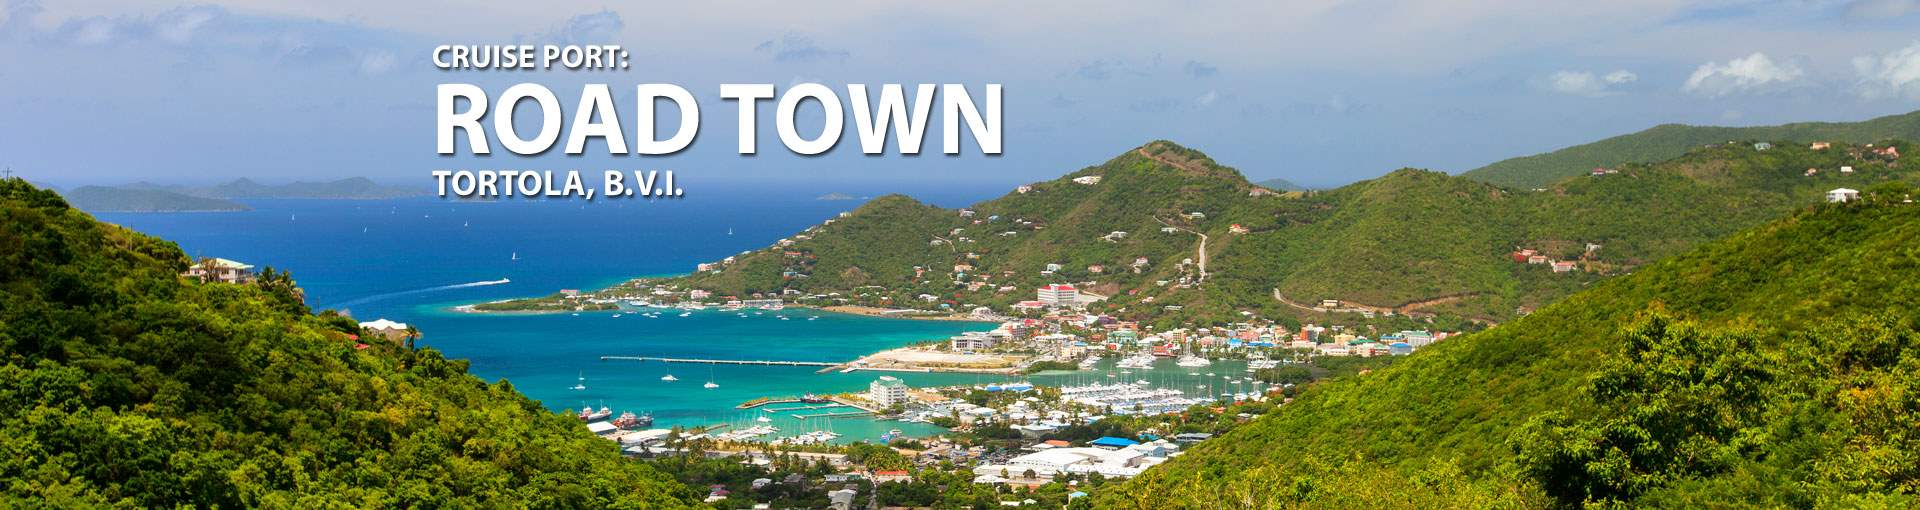 Cruises to Road Town, Tortola, B.V.I. Cruise Port